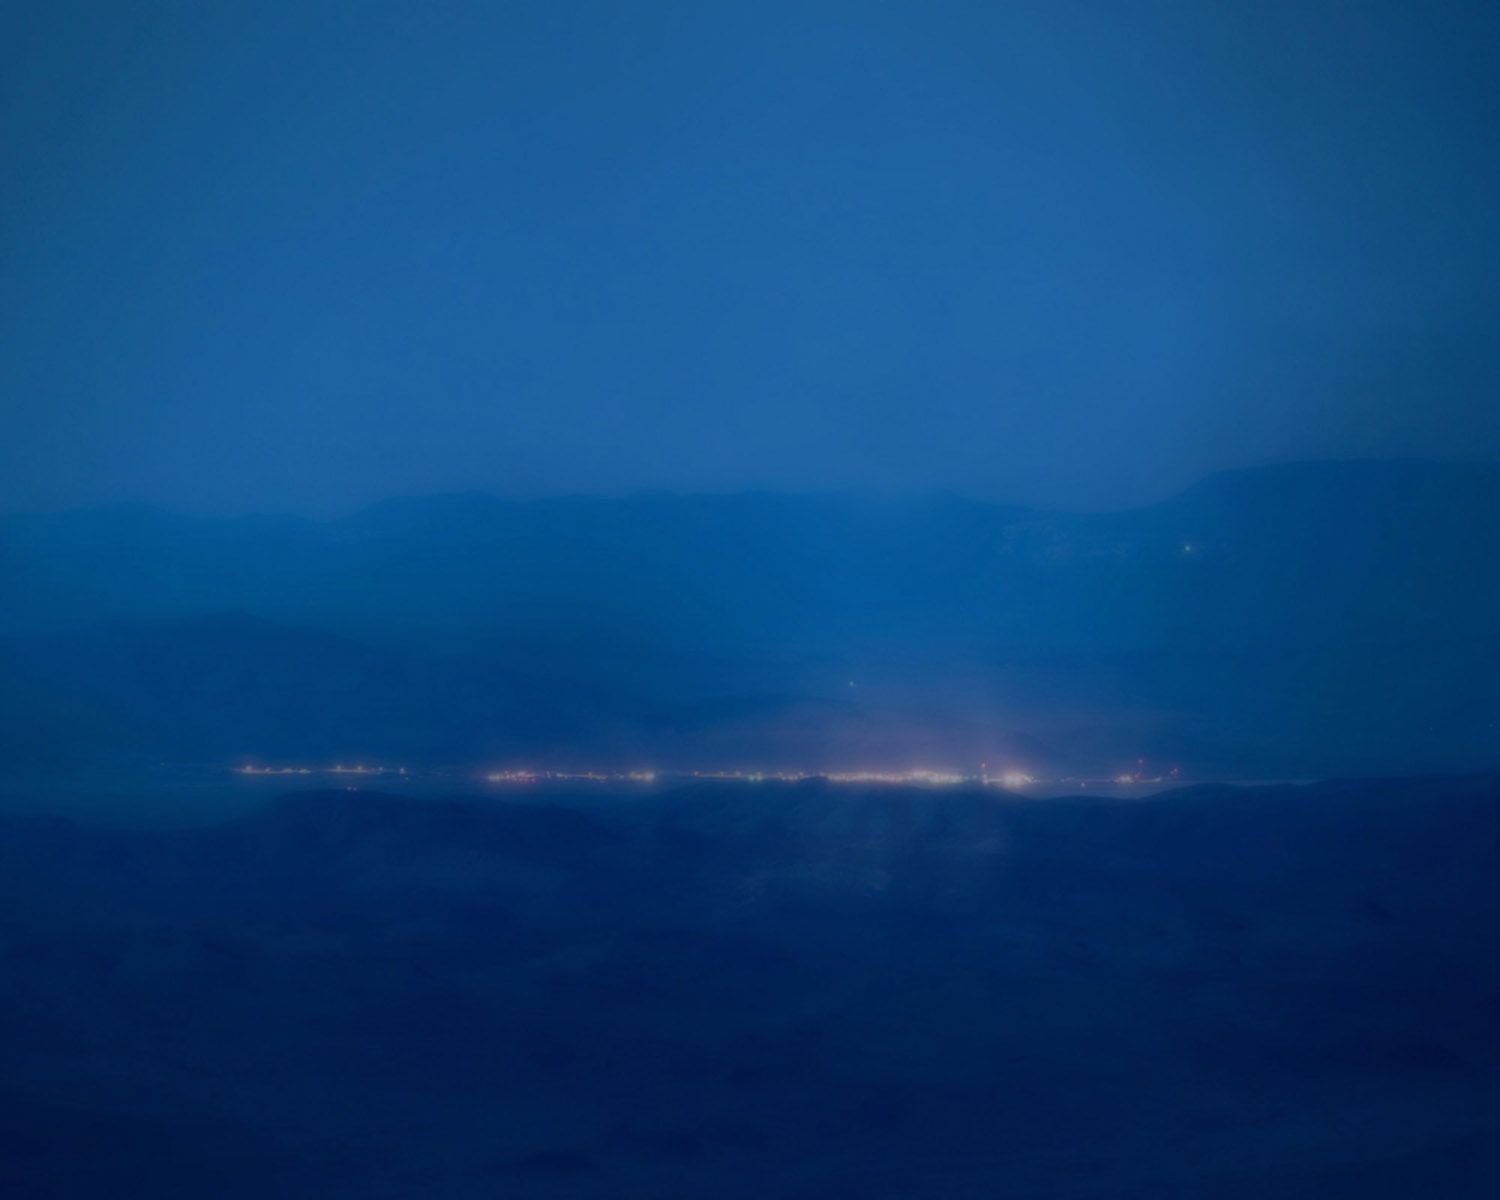 Trevor Paglen, Detachment 3, Air Force Flight Test Center, Groom Lake, NV; Distance: 26 miles, 2008